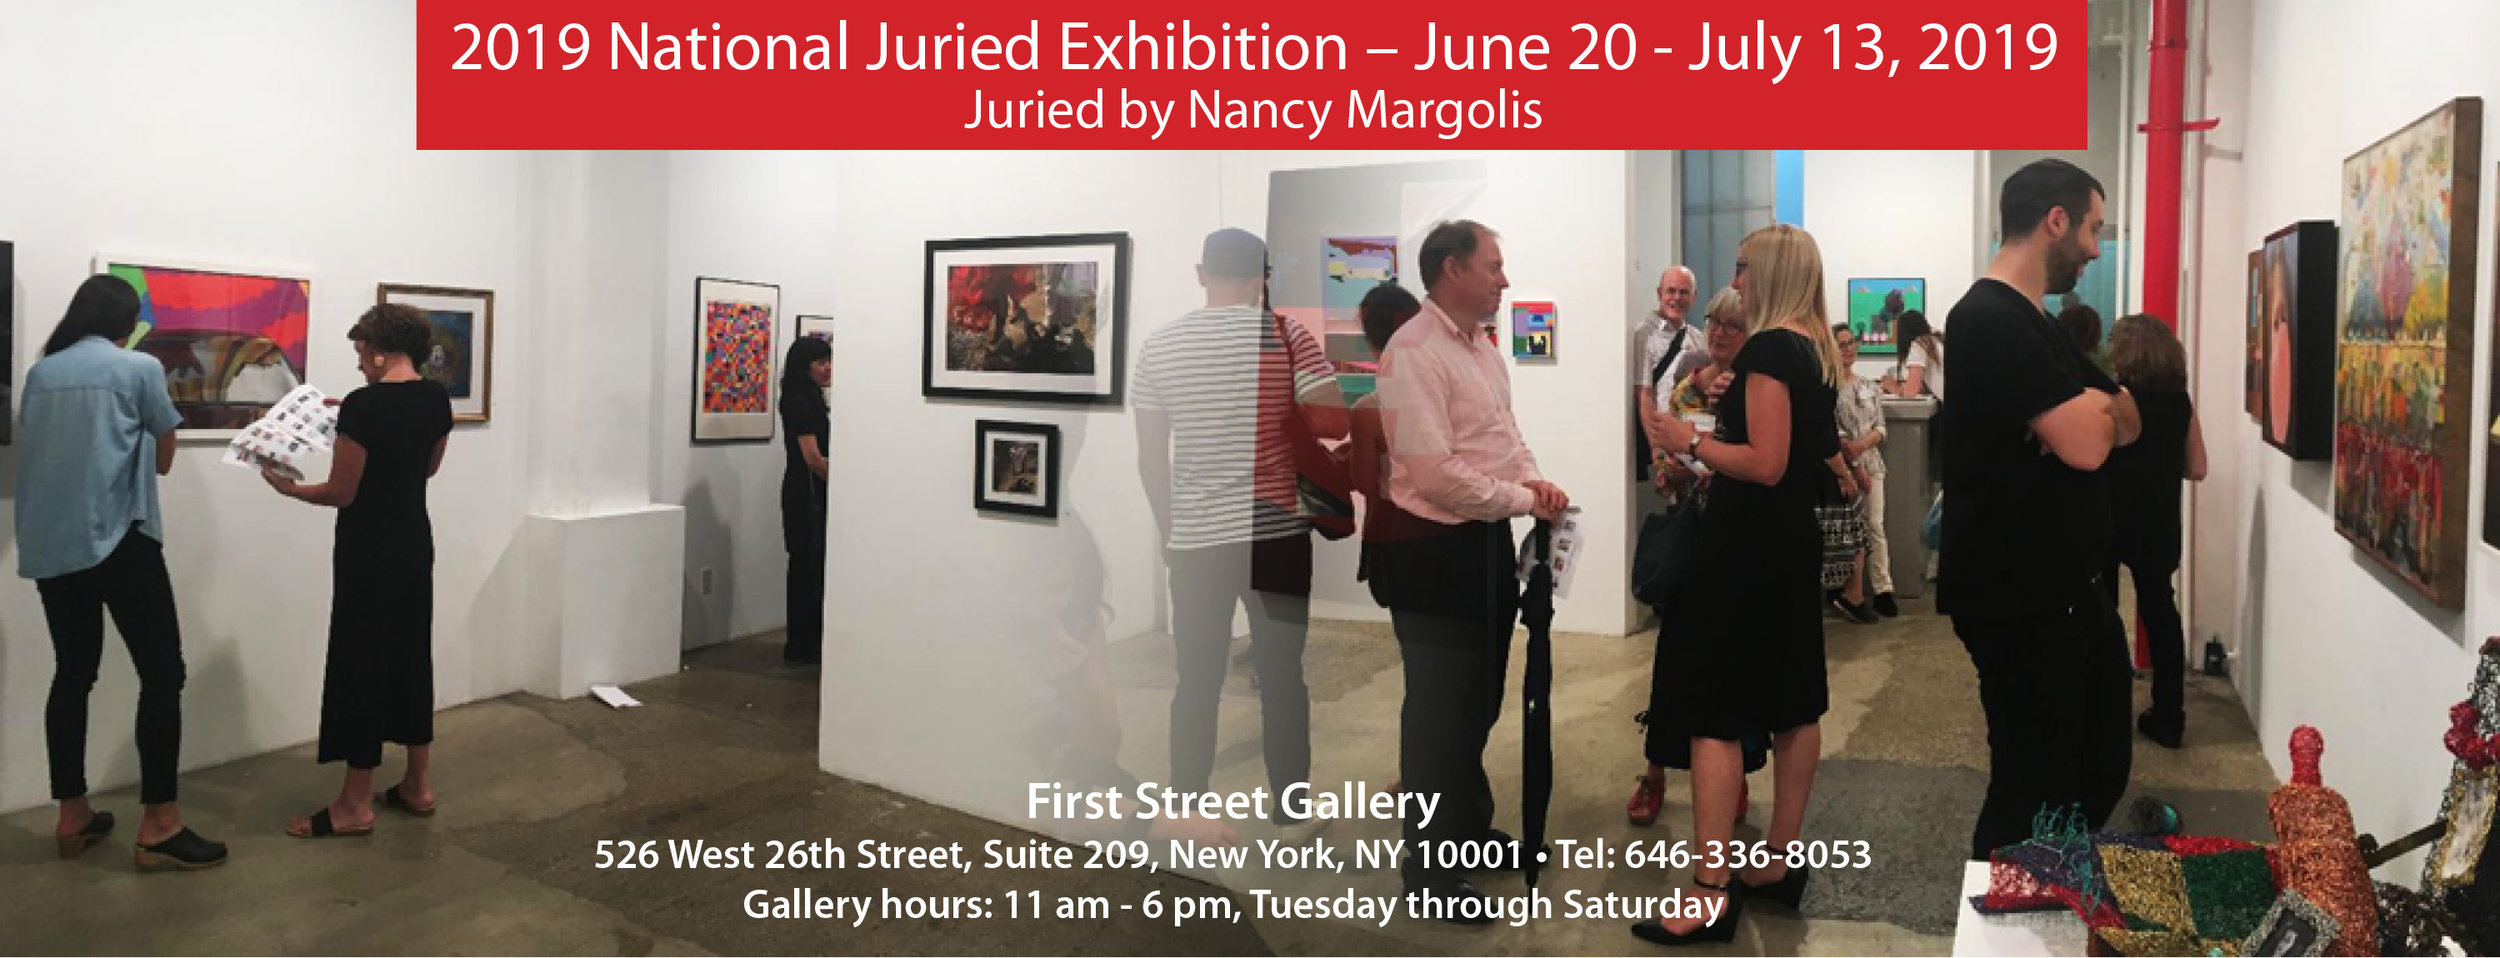 My painting, Harvest Eclipse, was accepted at the 2019 Juried Exhibit, First Street Gallery, Chelsea, NYC. Thank you Nancy Margolis.